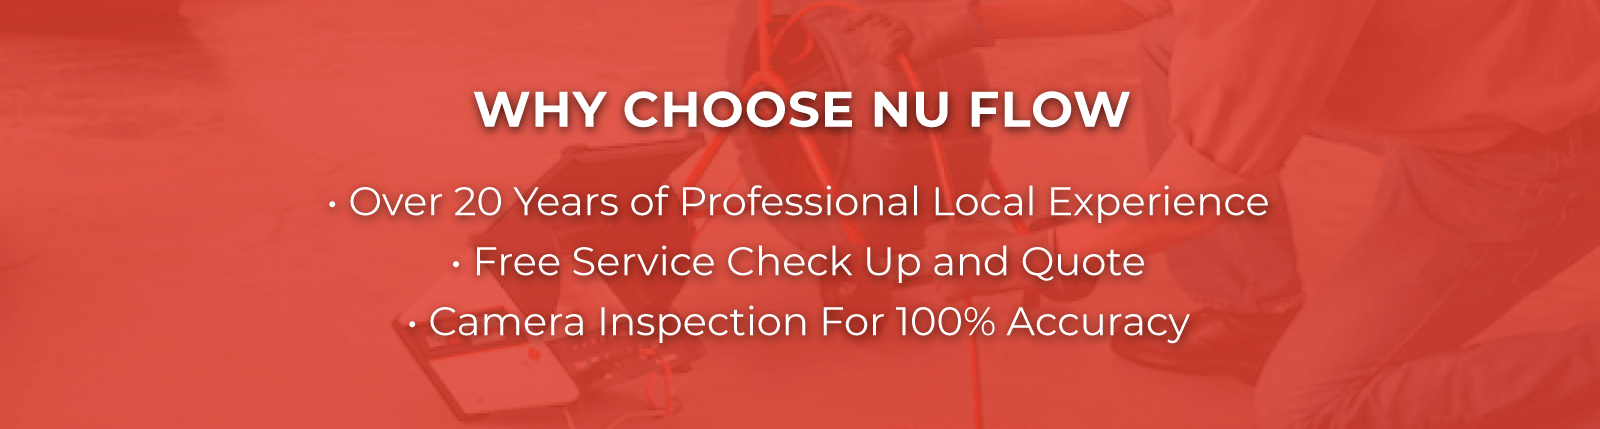 nu flow oklahoma sewer repair 1 Drain Cleaning In Oklahoma City, OK